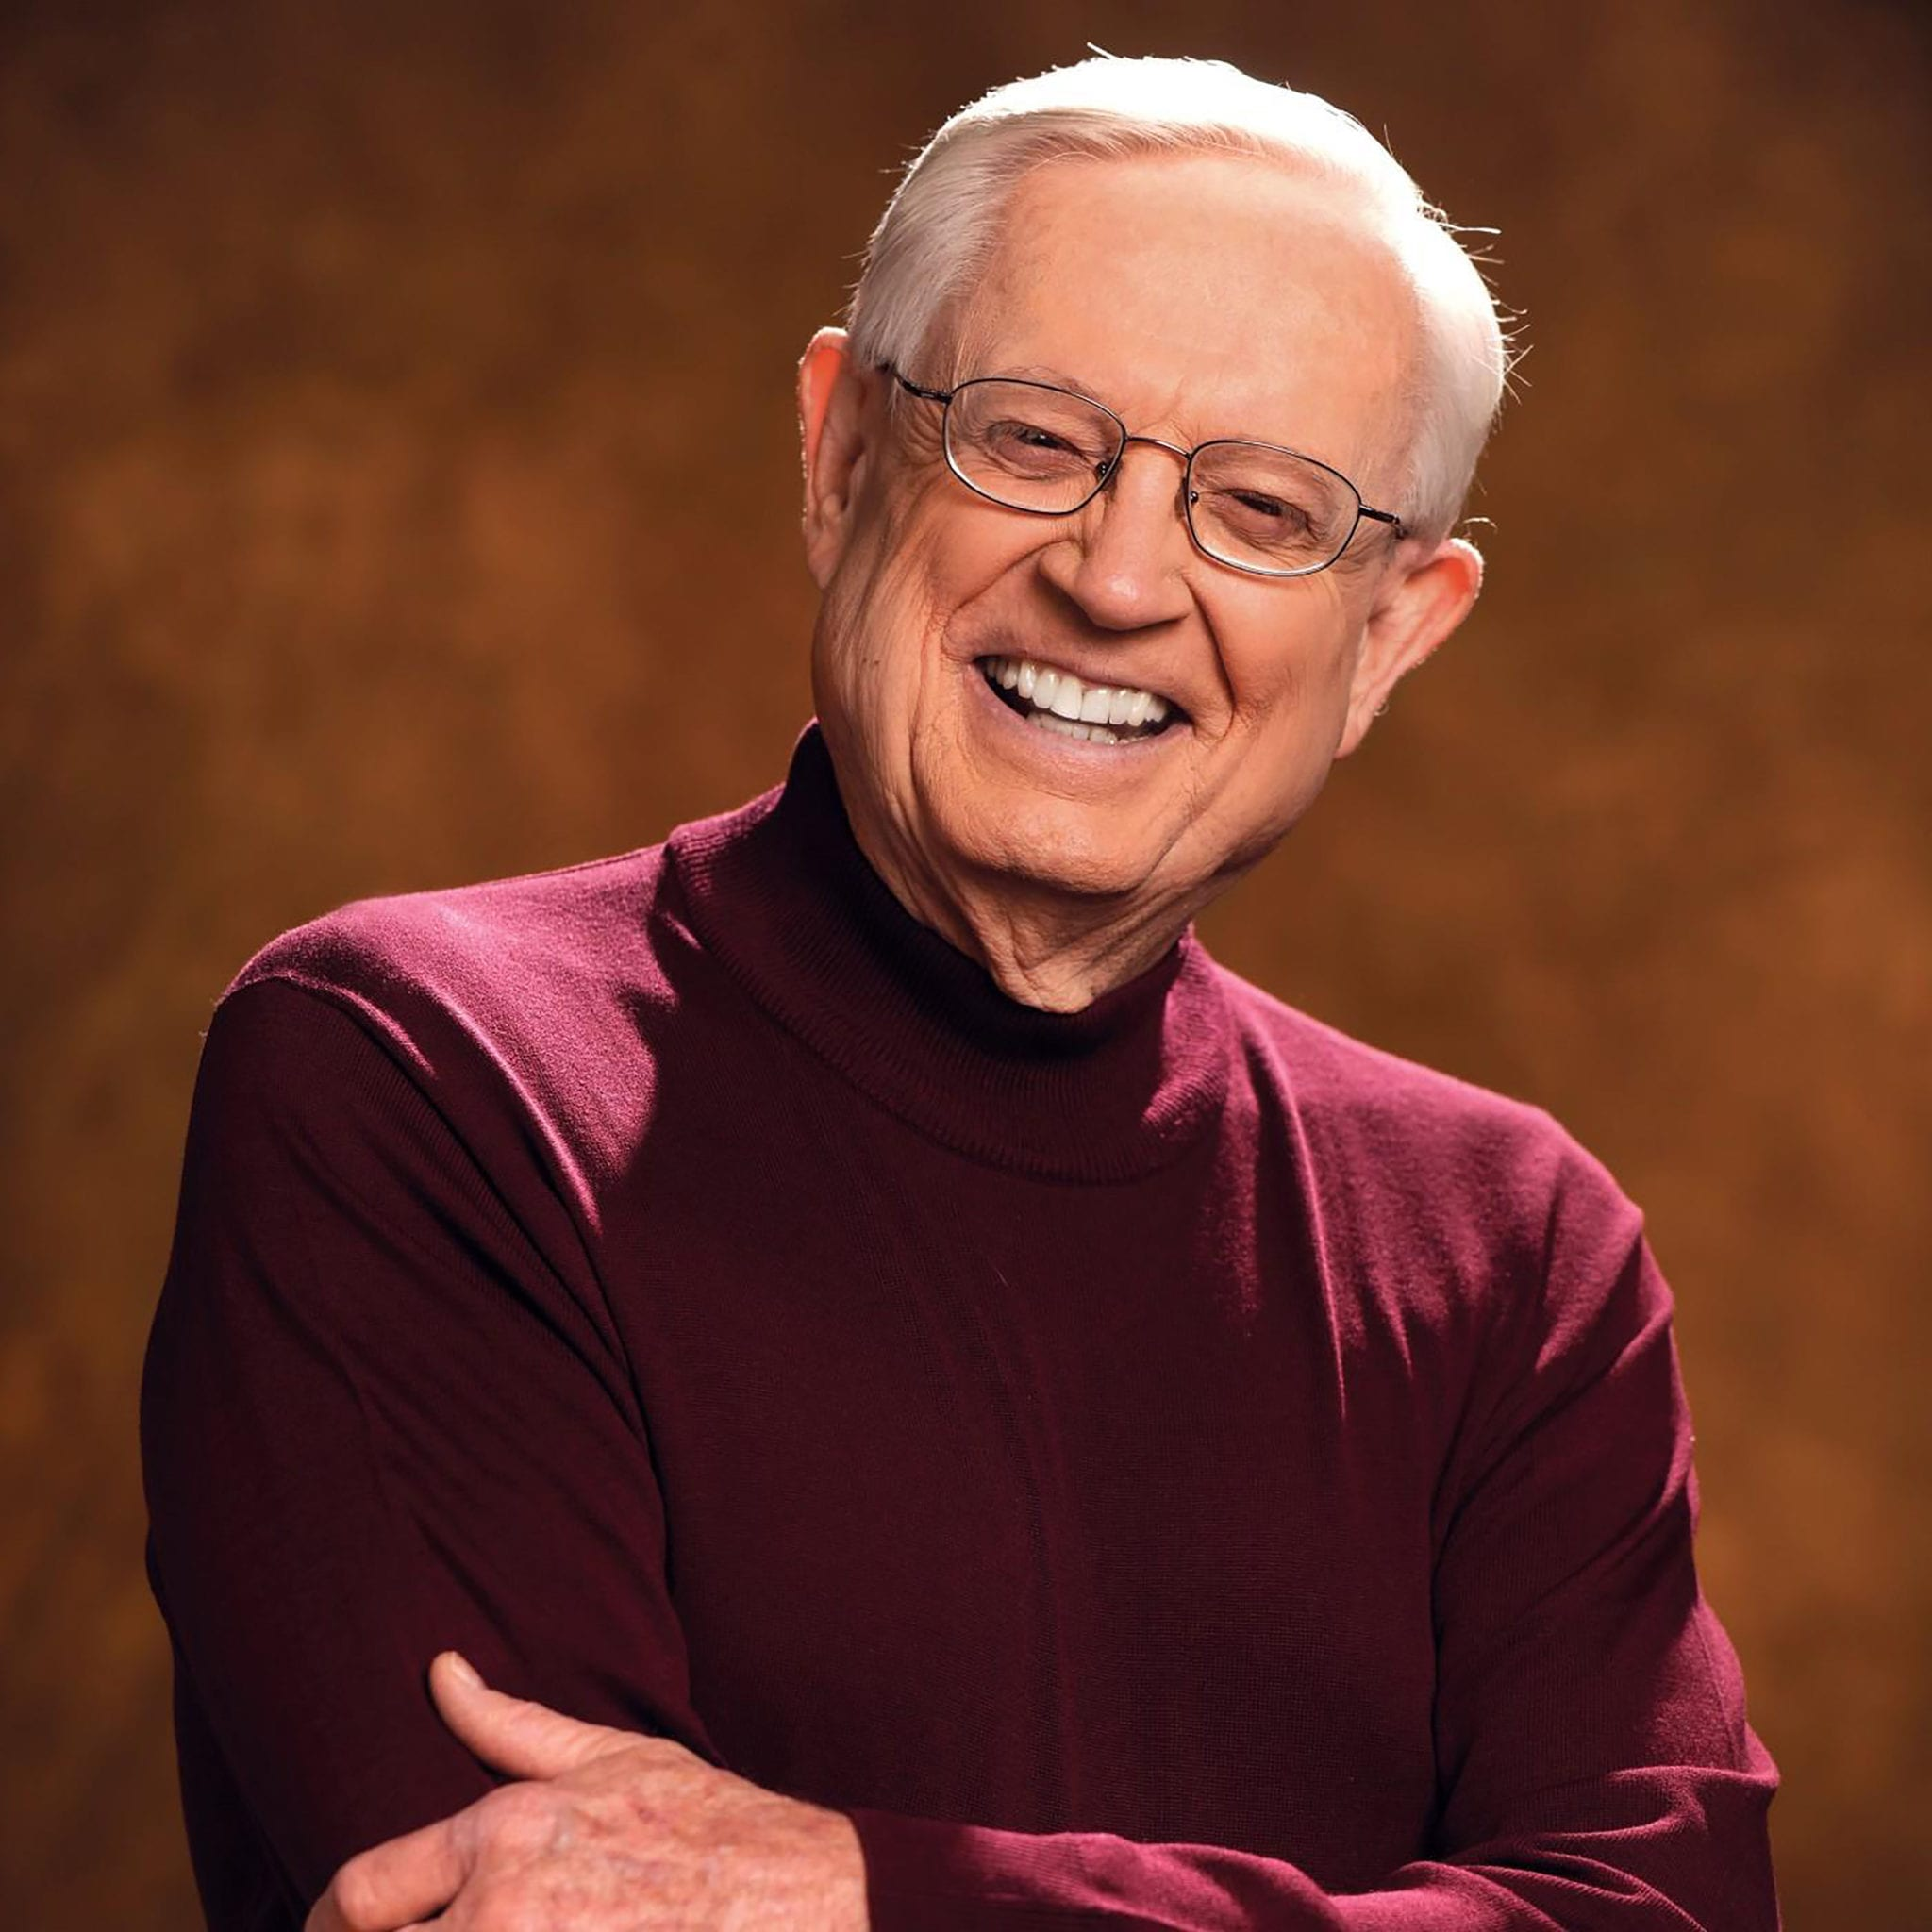 CHUCK SWINDOLL: INSIGHT FOR LIVING